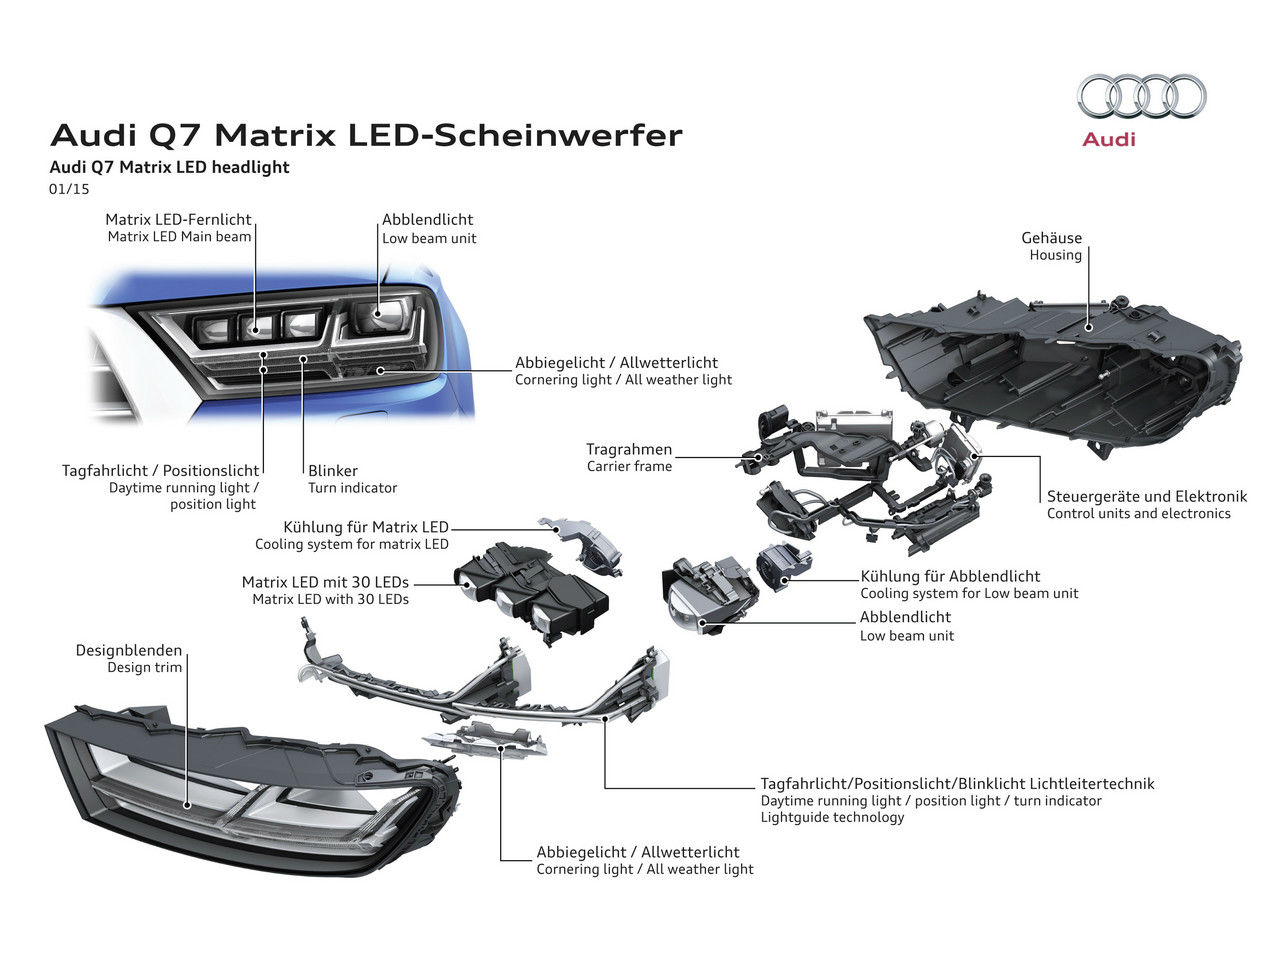 audi matrix led headlights likely to become available in